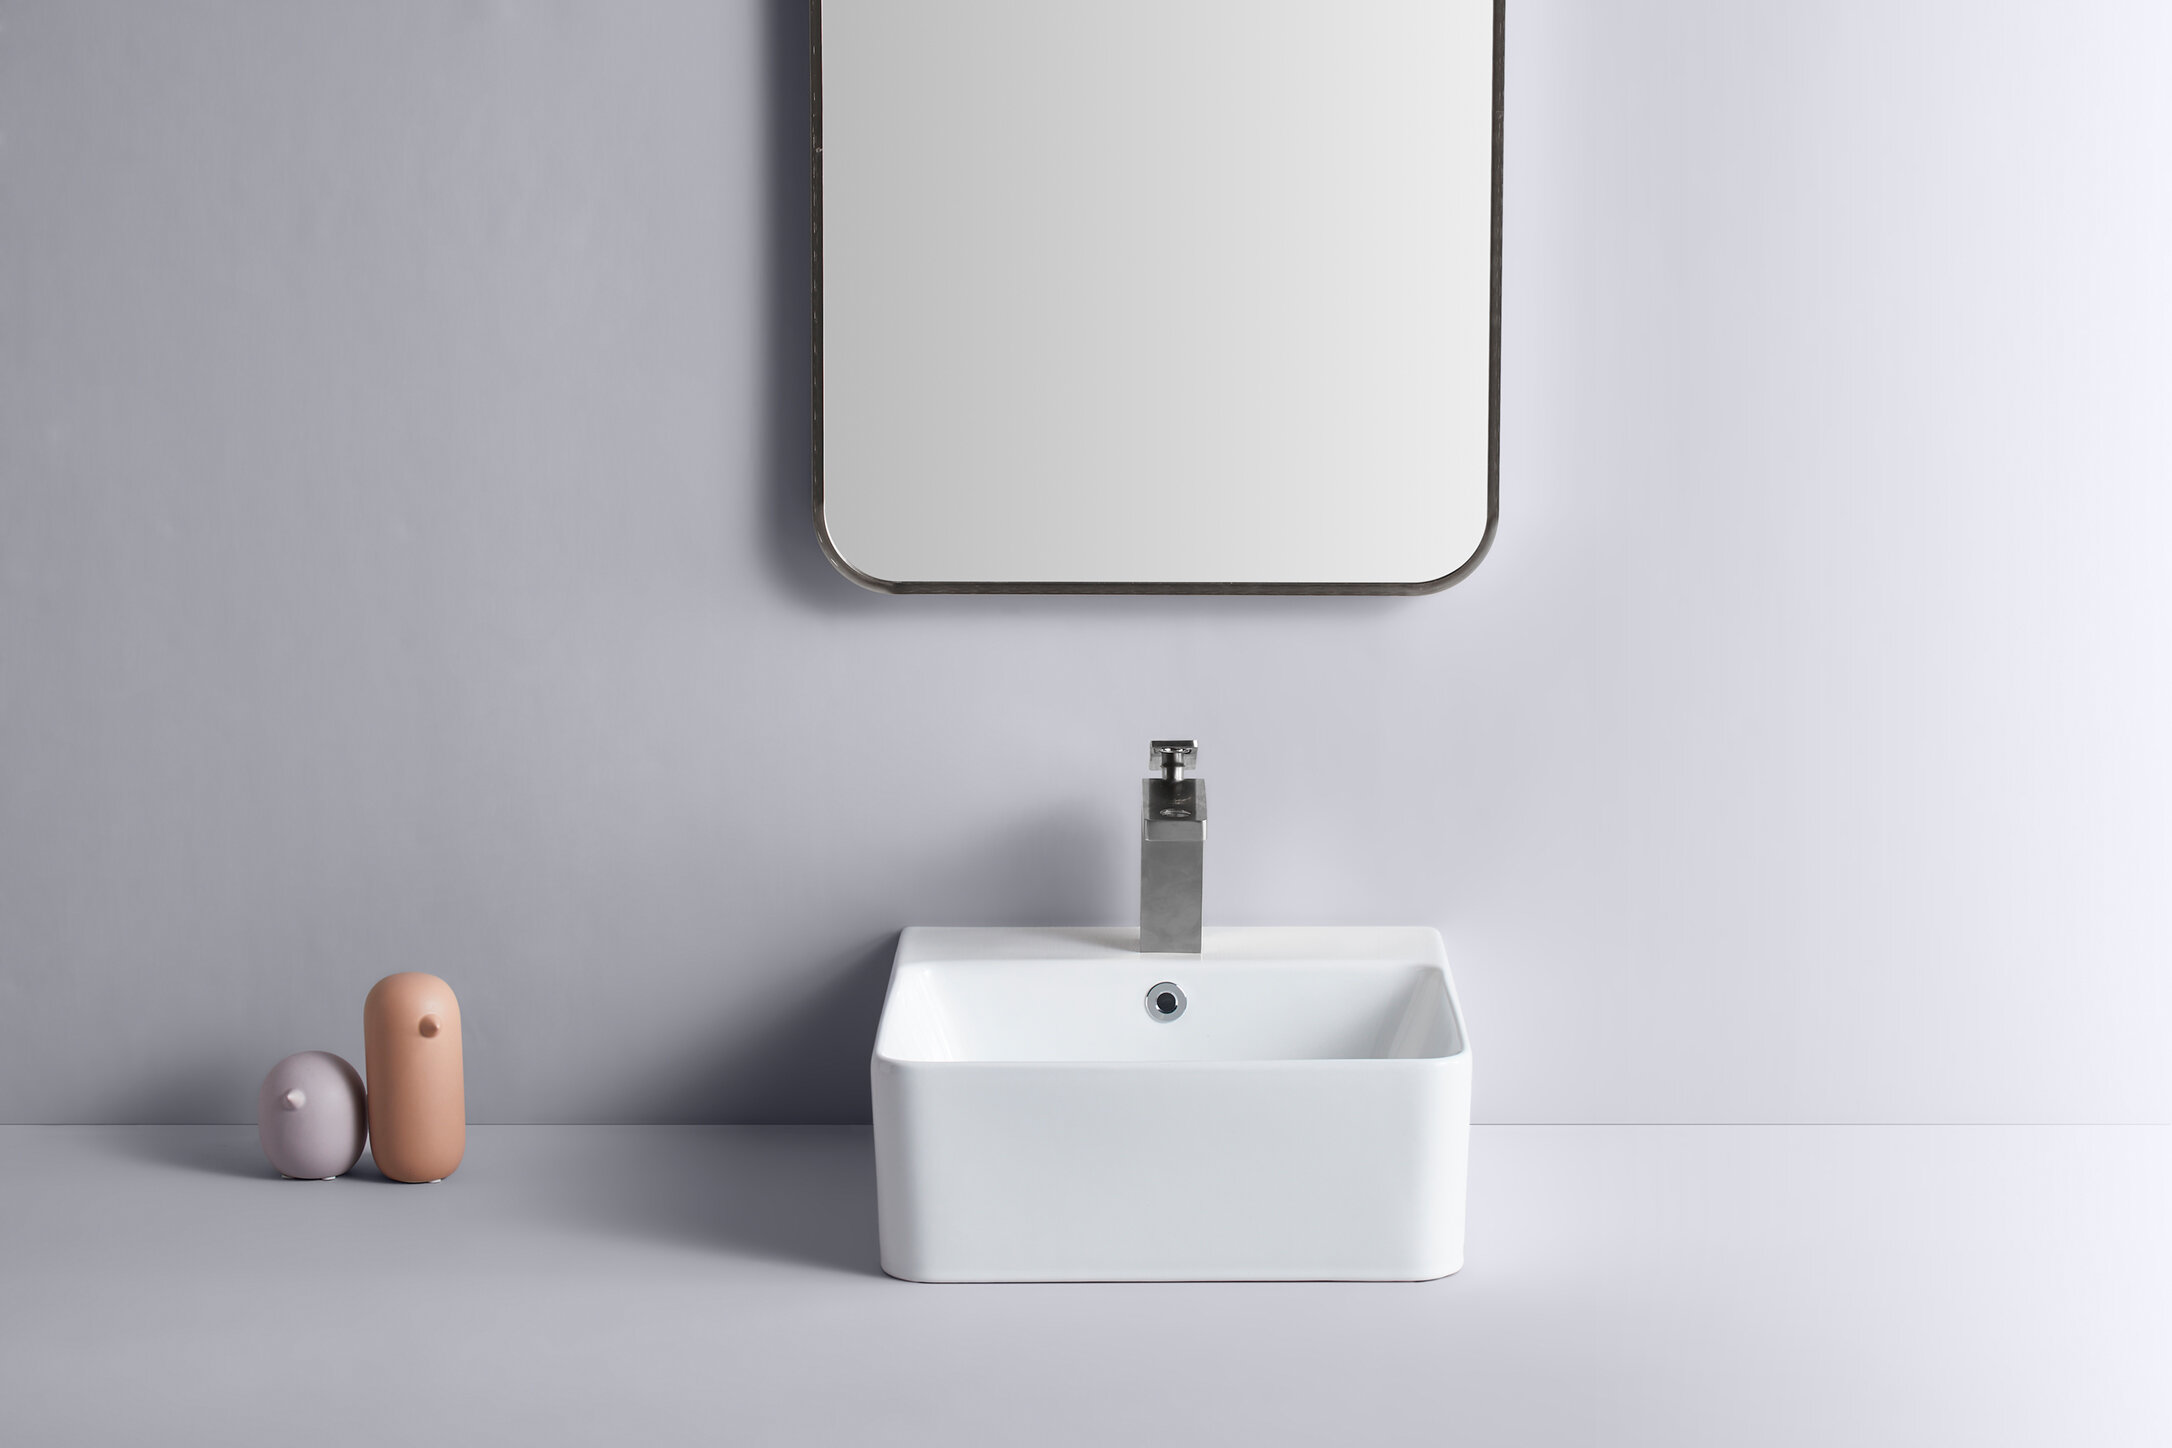 Itapo White Ceramic Square Vessel Bathroom Sink With Faucet And Overflow Wayfair